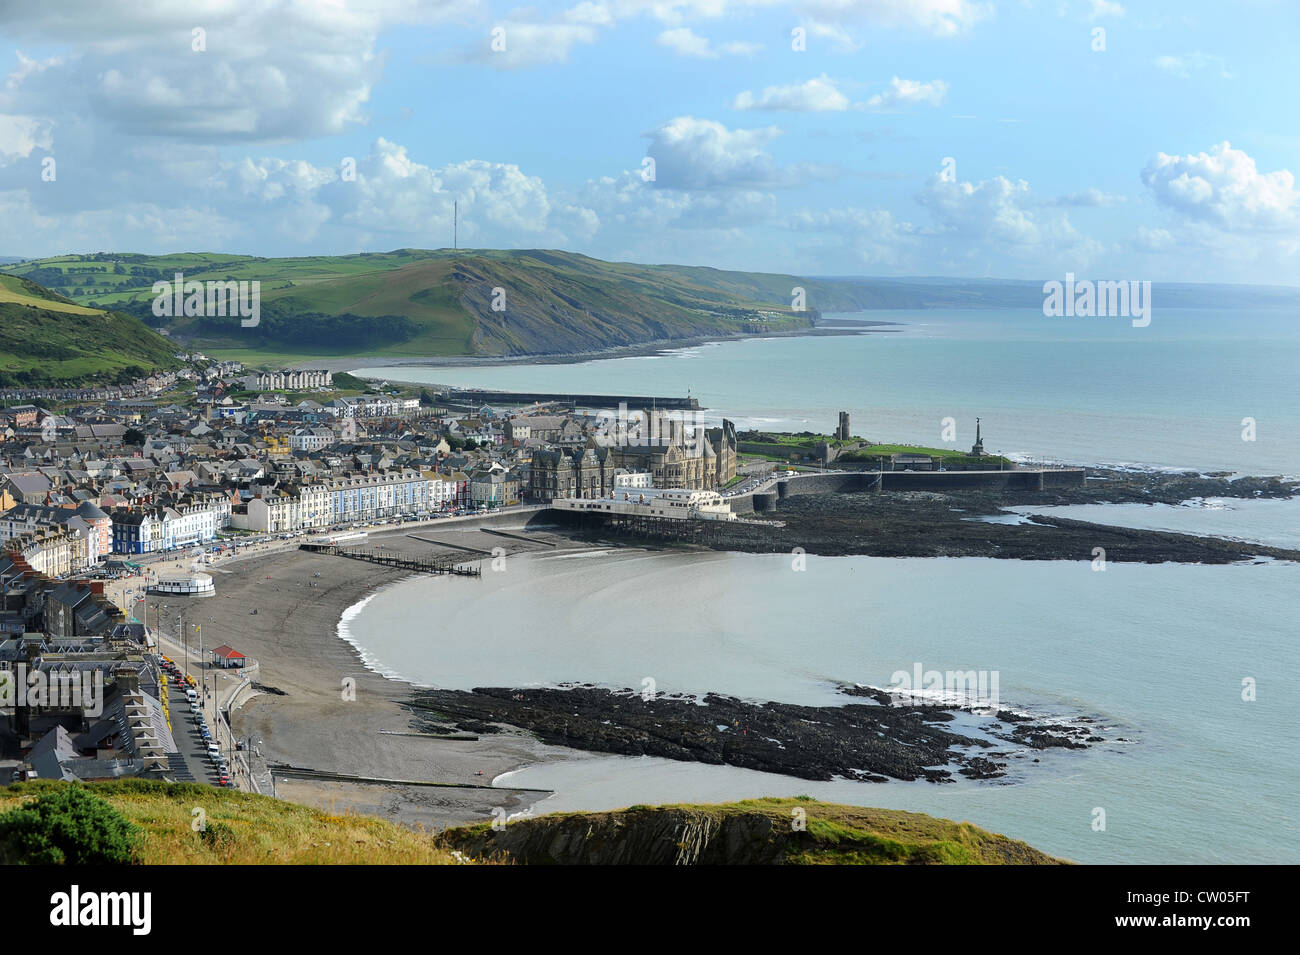 Aerial view of Aberystwyth town from Constitution Hill Ceredigion Wales. - Stock Image